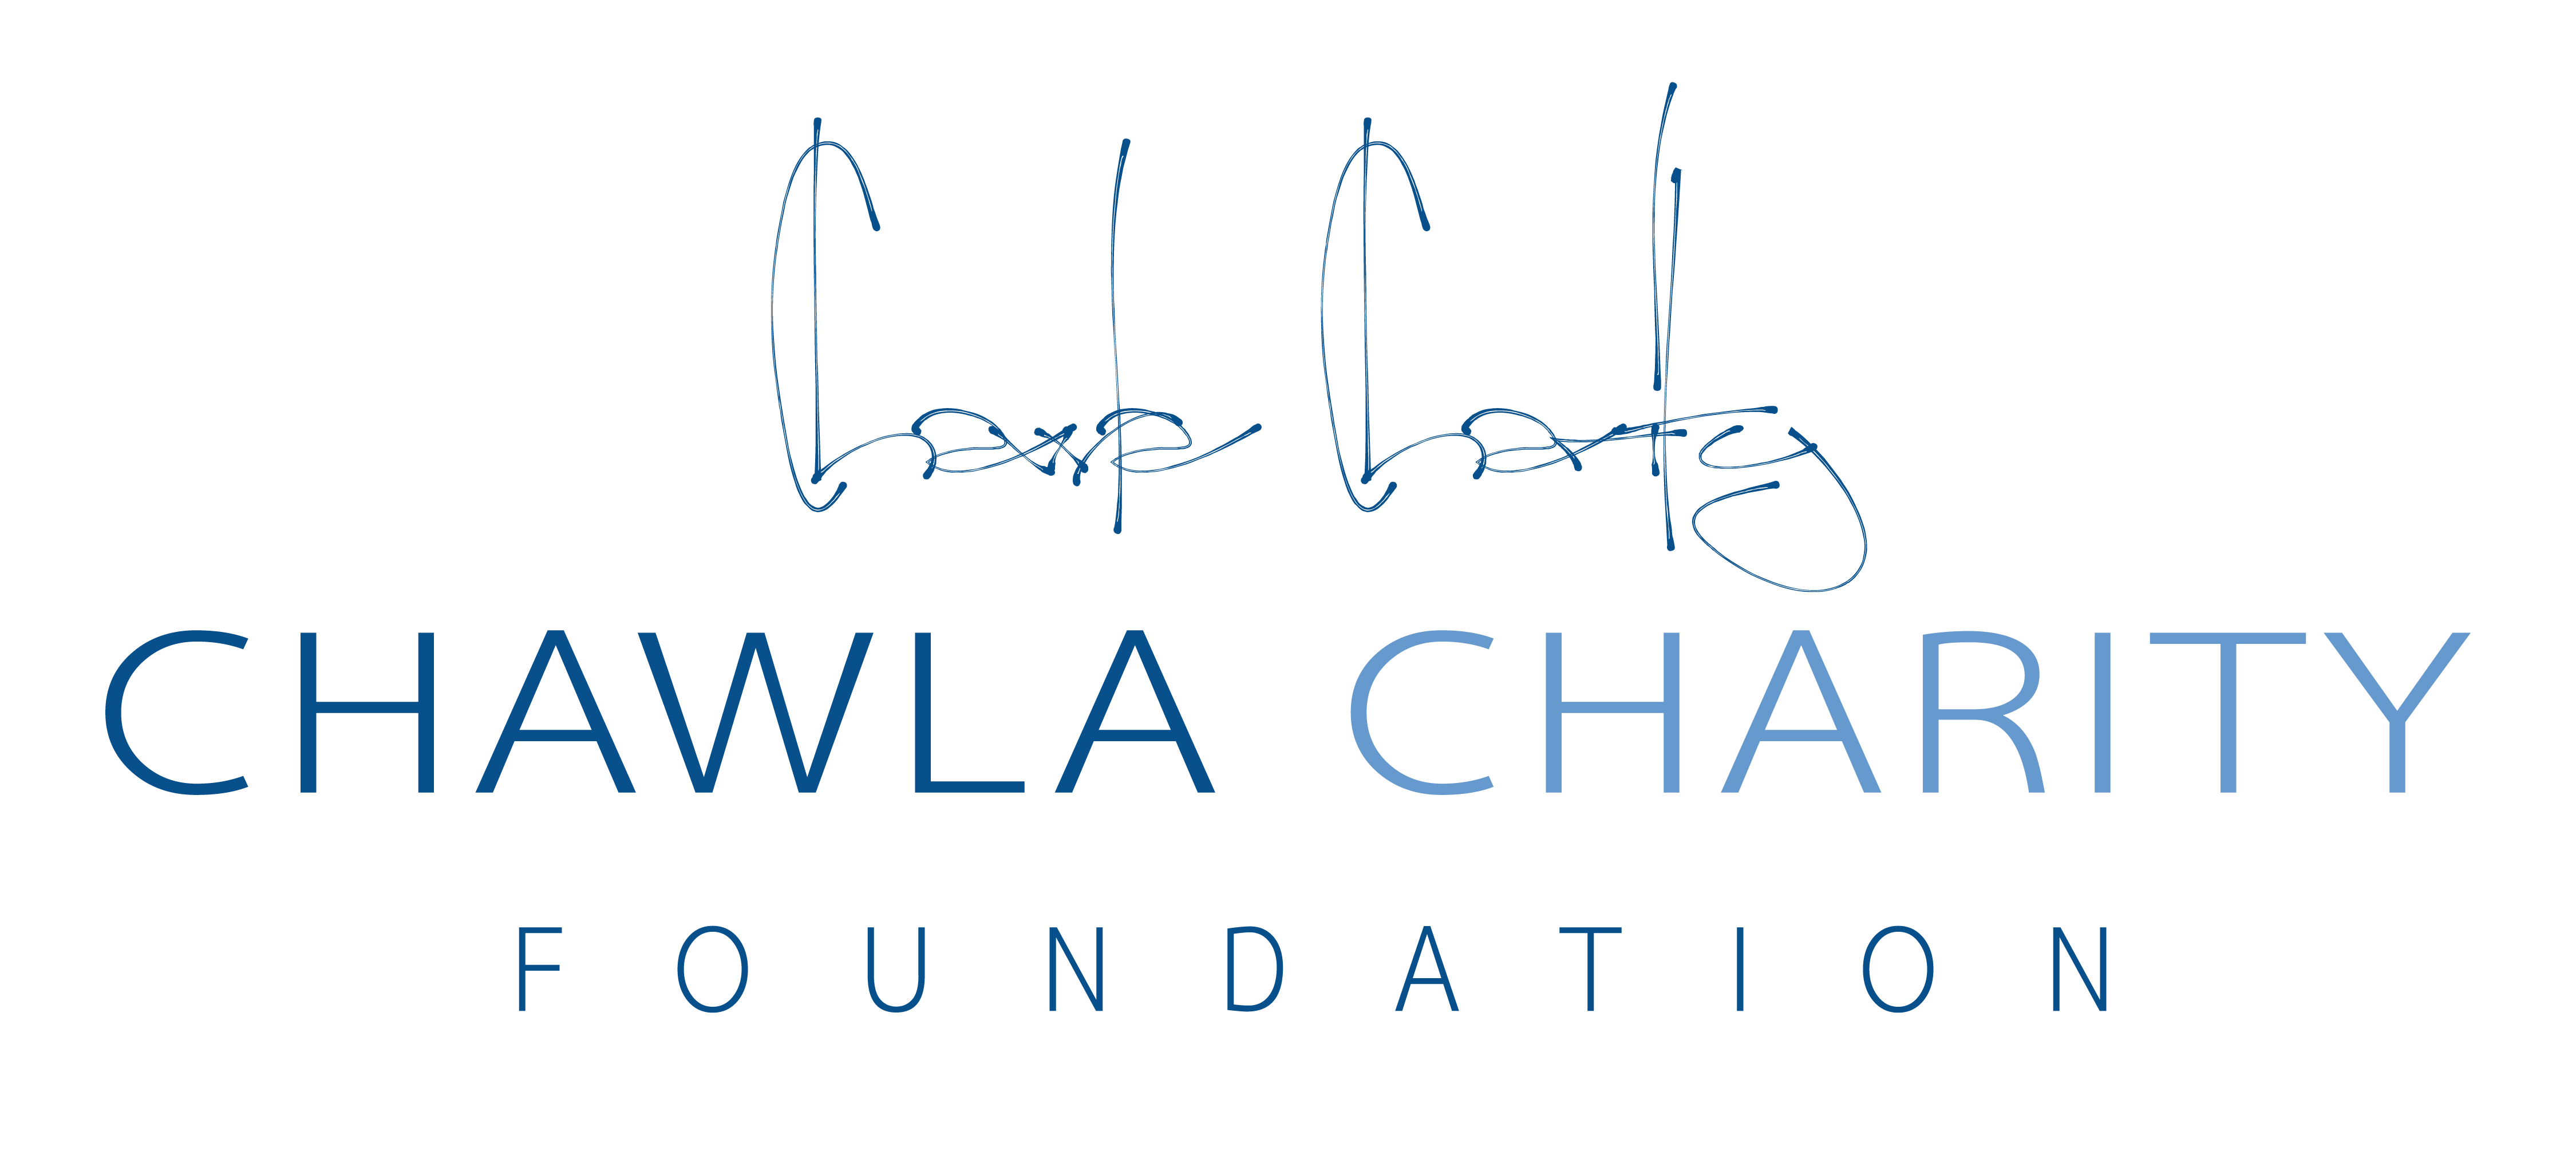 Chawla Charity Foundation